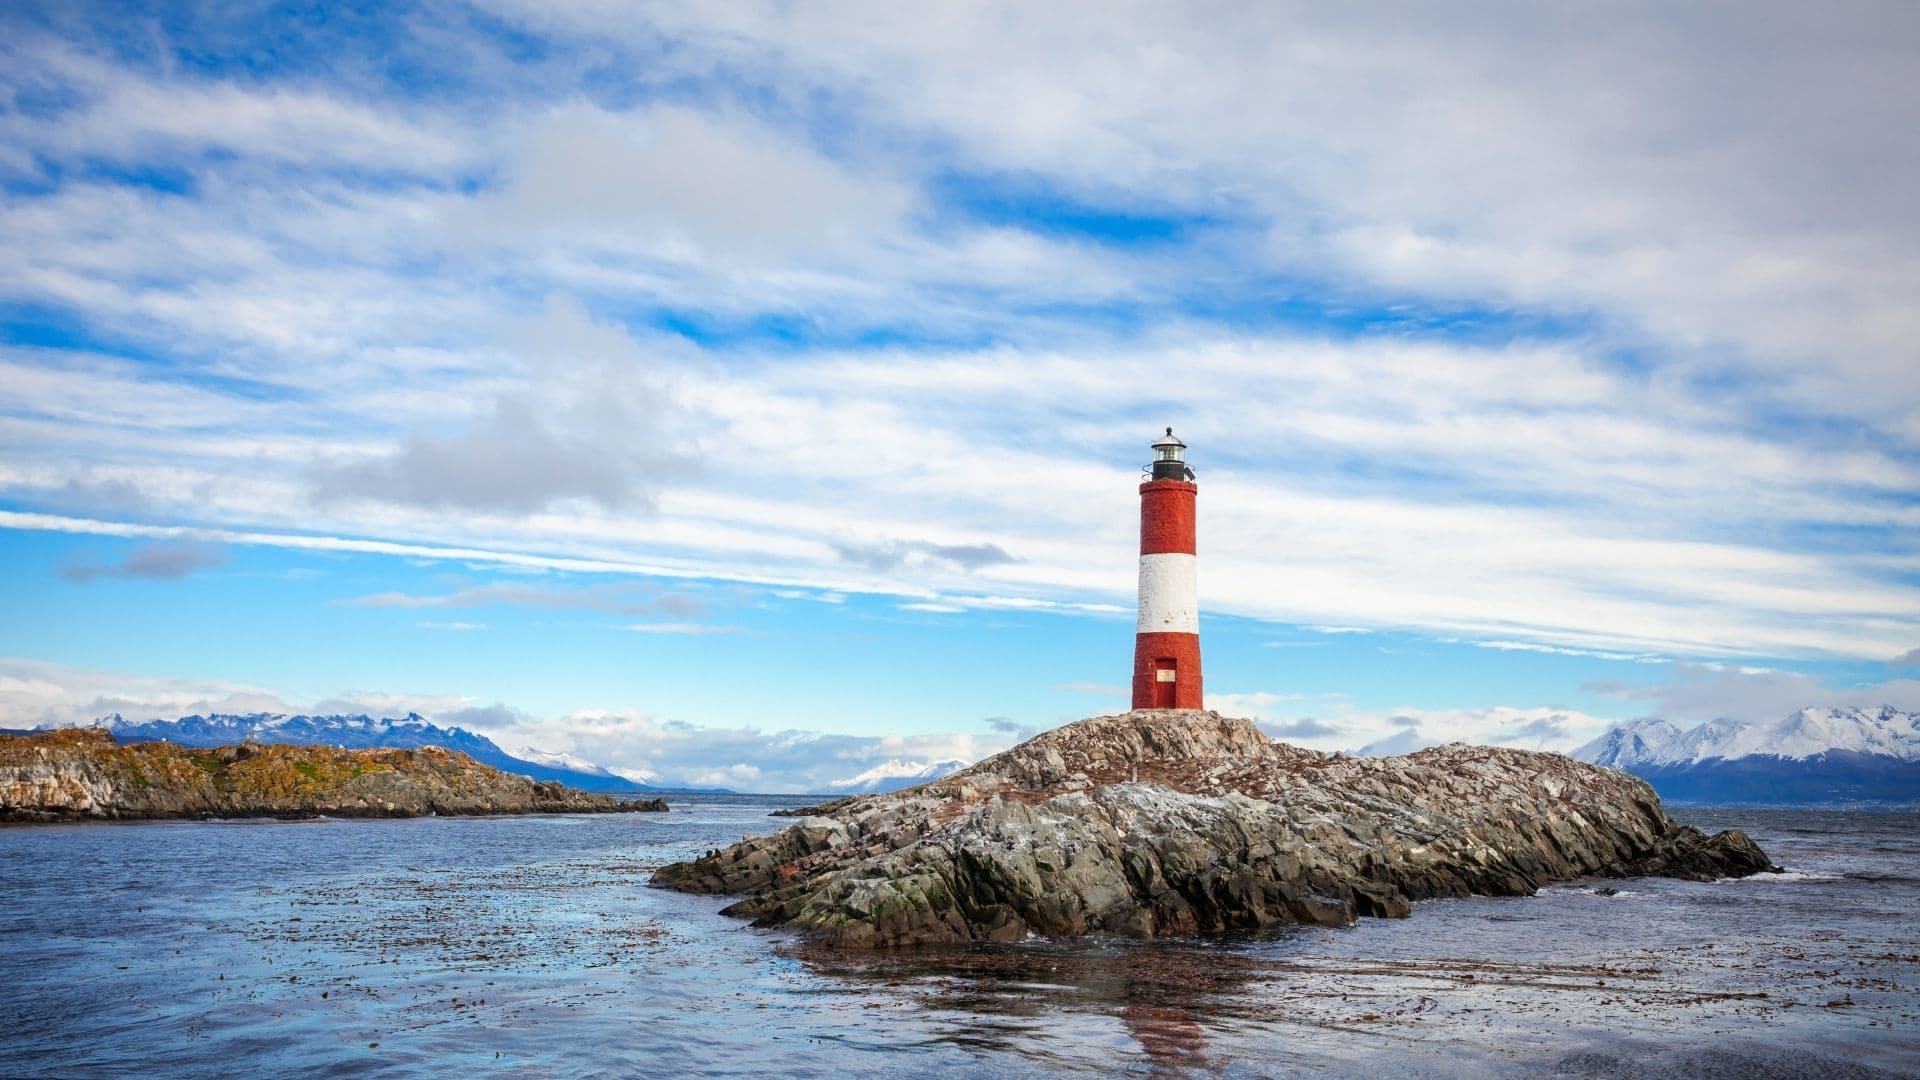 Ushuaia cheapest destinations in South America